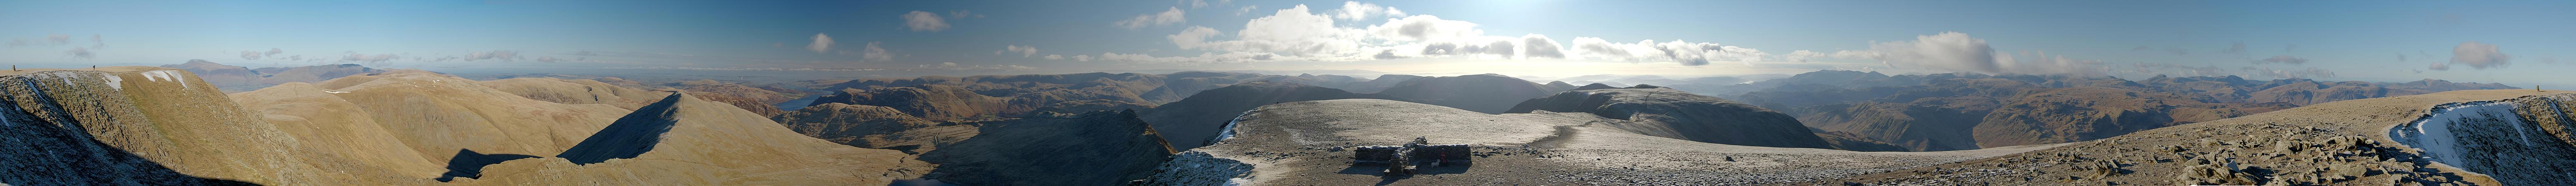 Helvellyn - Complete Panorama